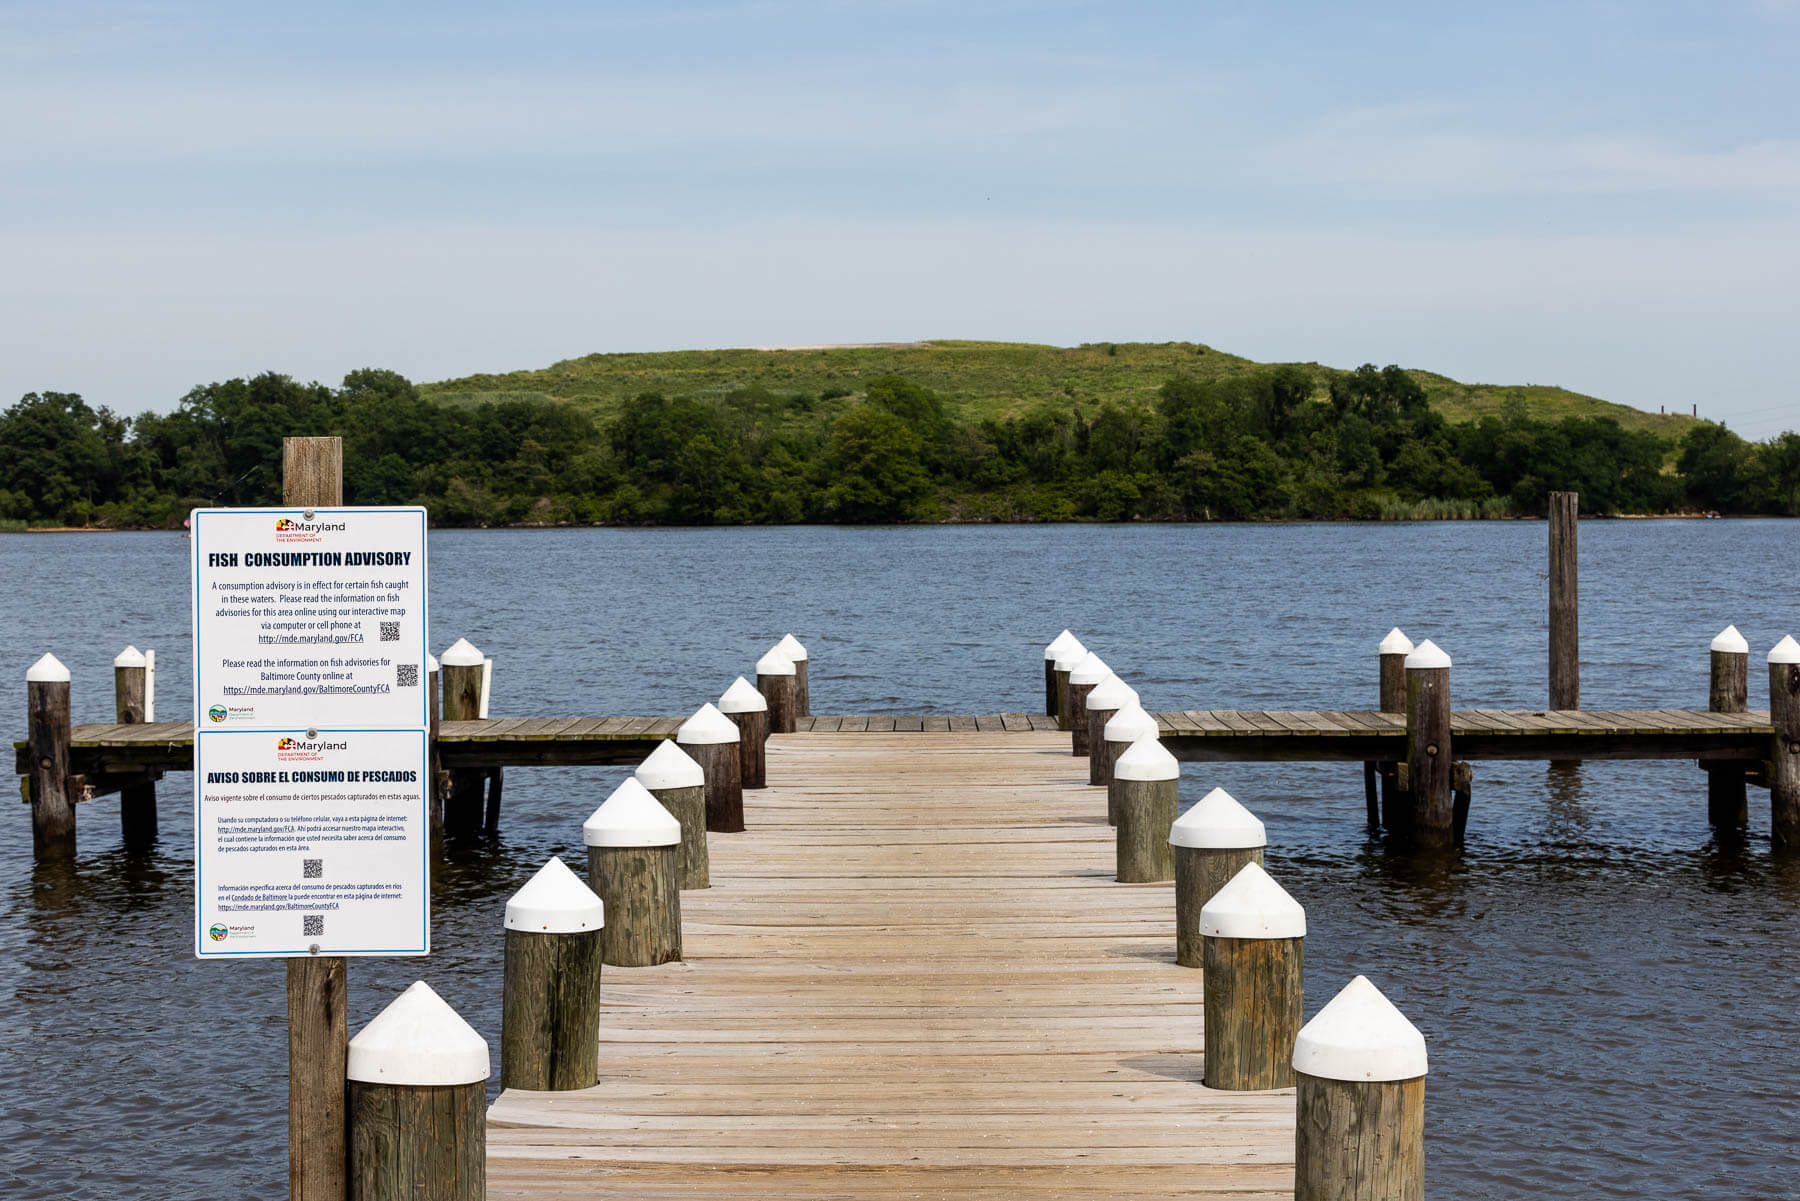 An empty pier with a fish consumption advisory sign.